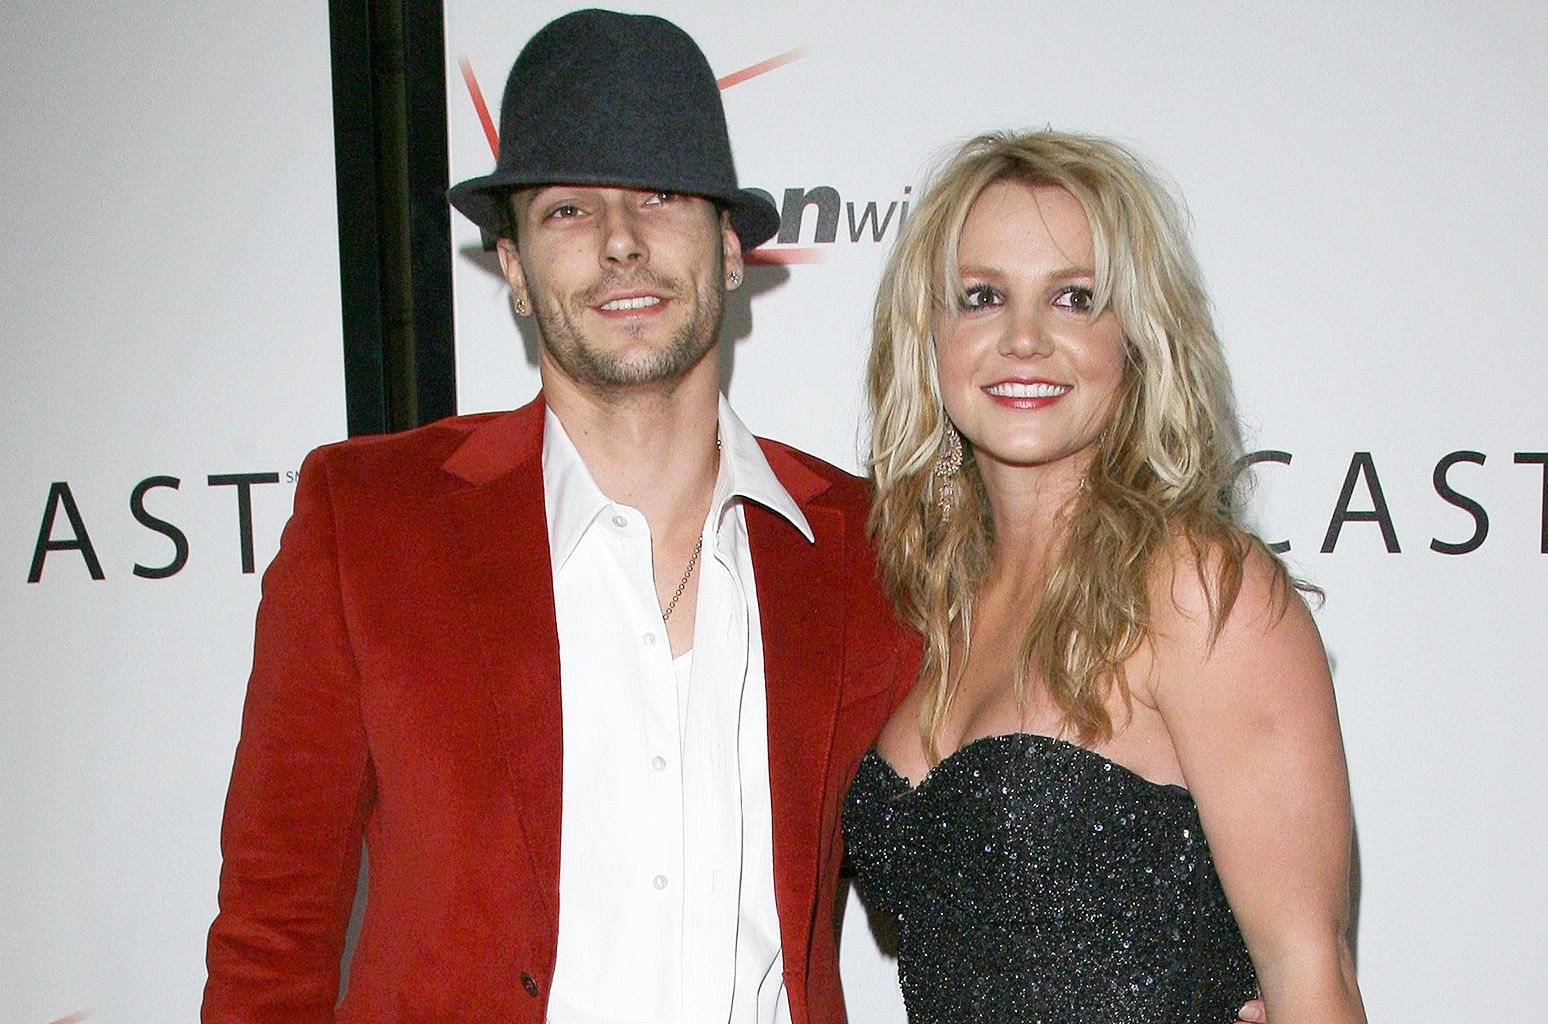 Kevin Federline and Britney Spears before their split